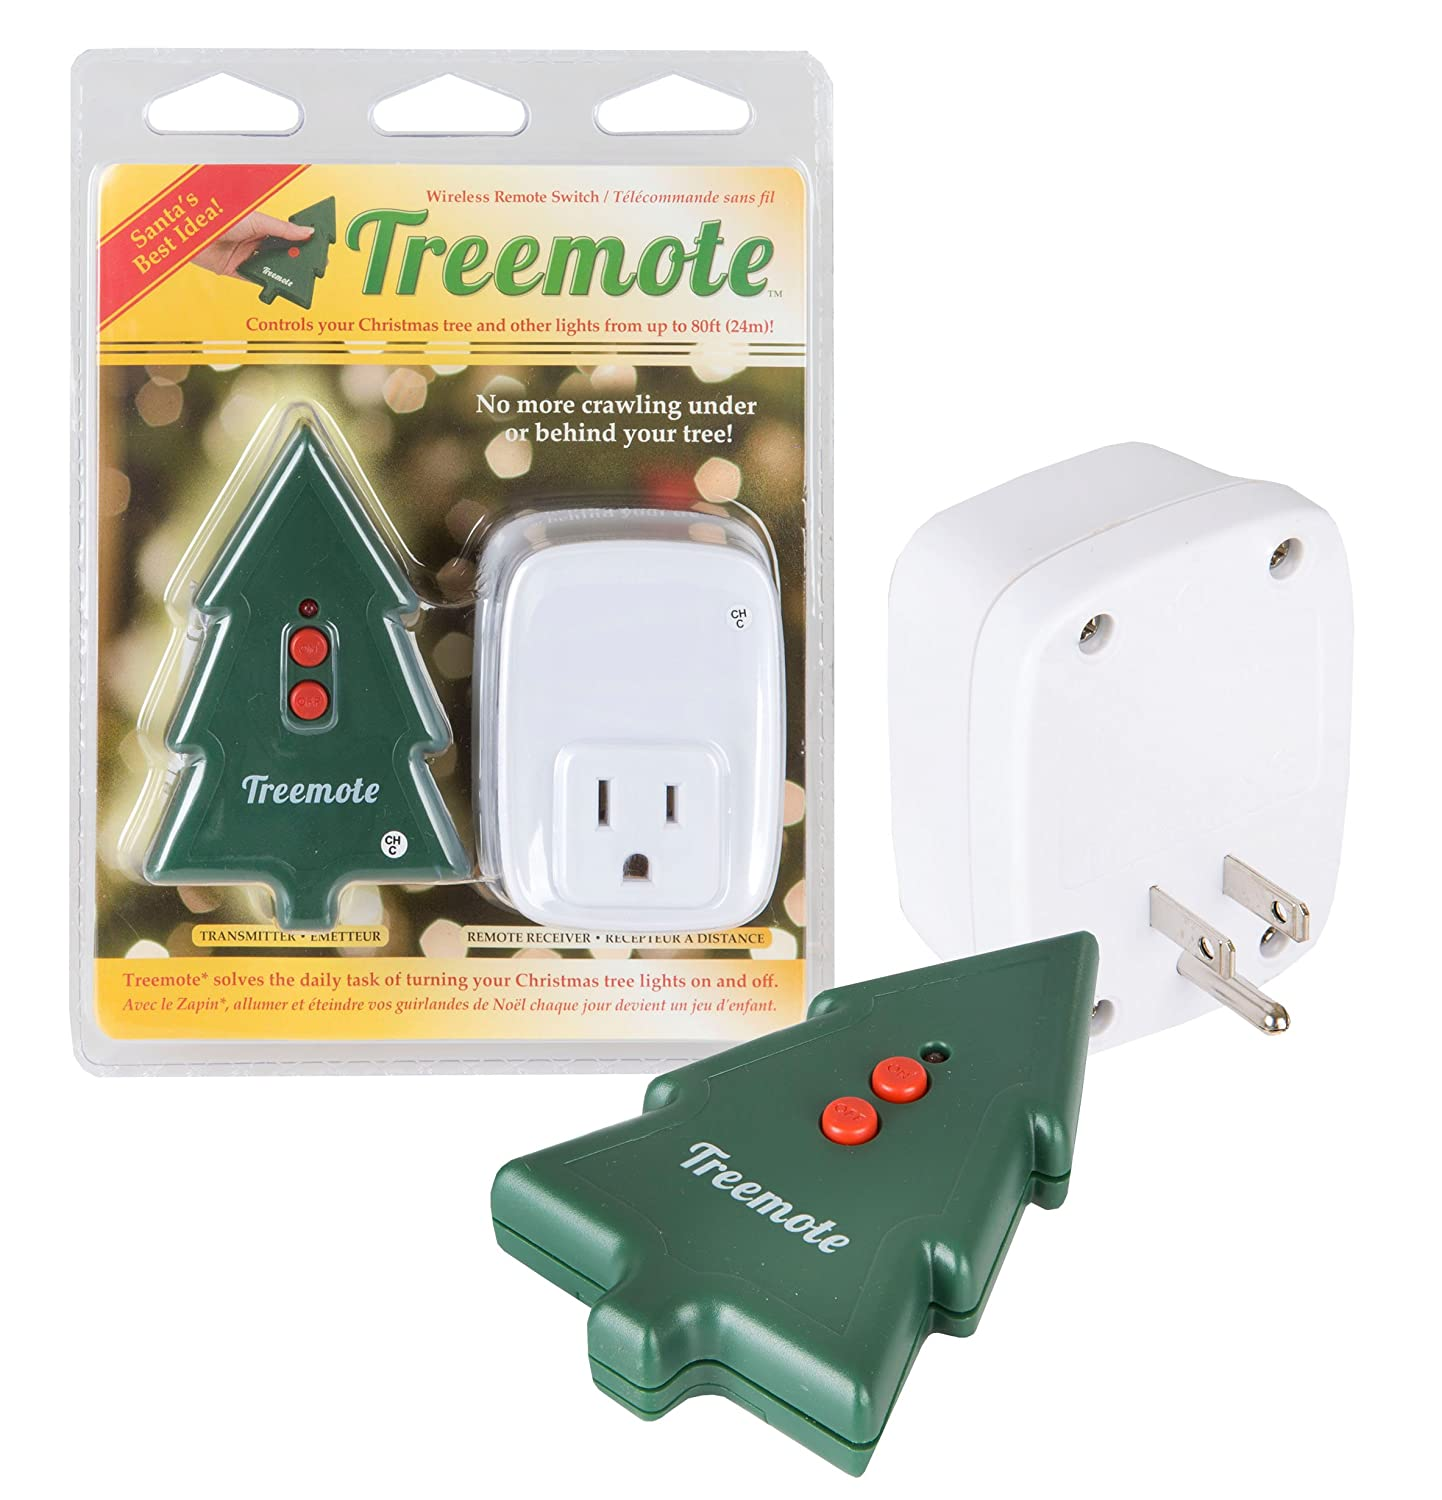 Amazon.com: Treemote – Wireless Remote Switch for Christmas Tree and ...